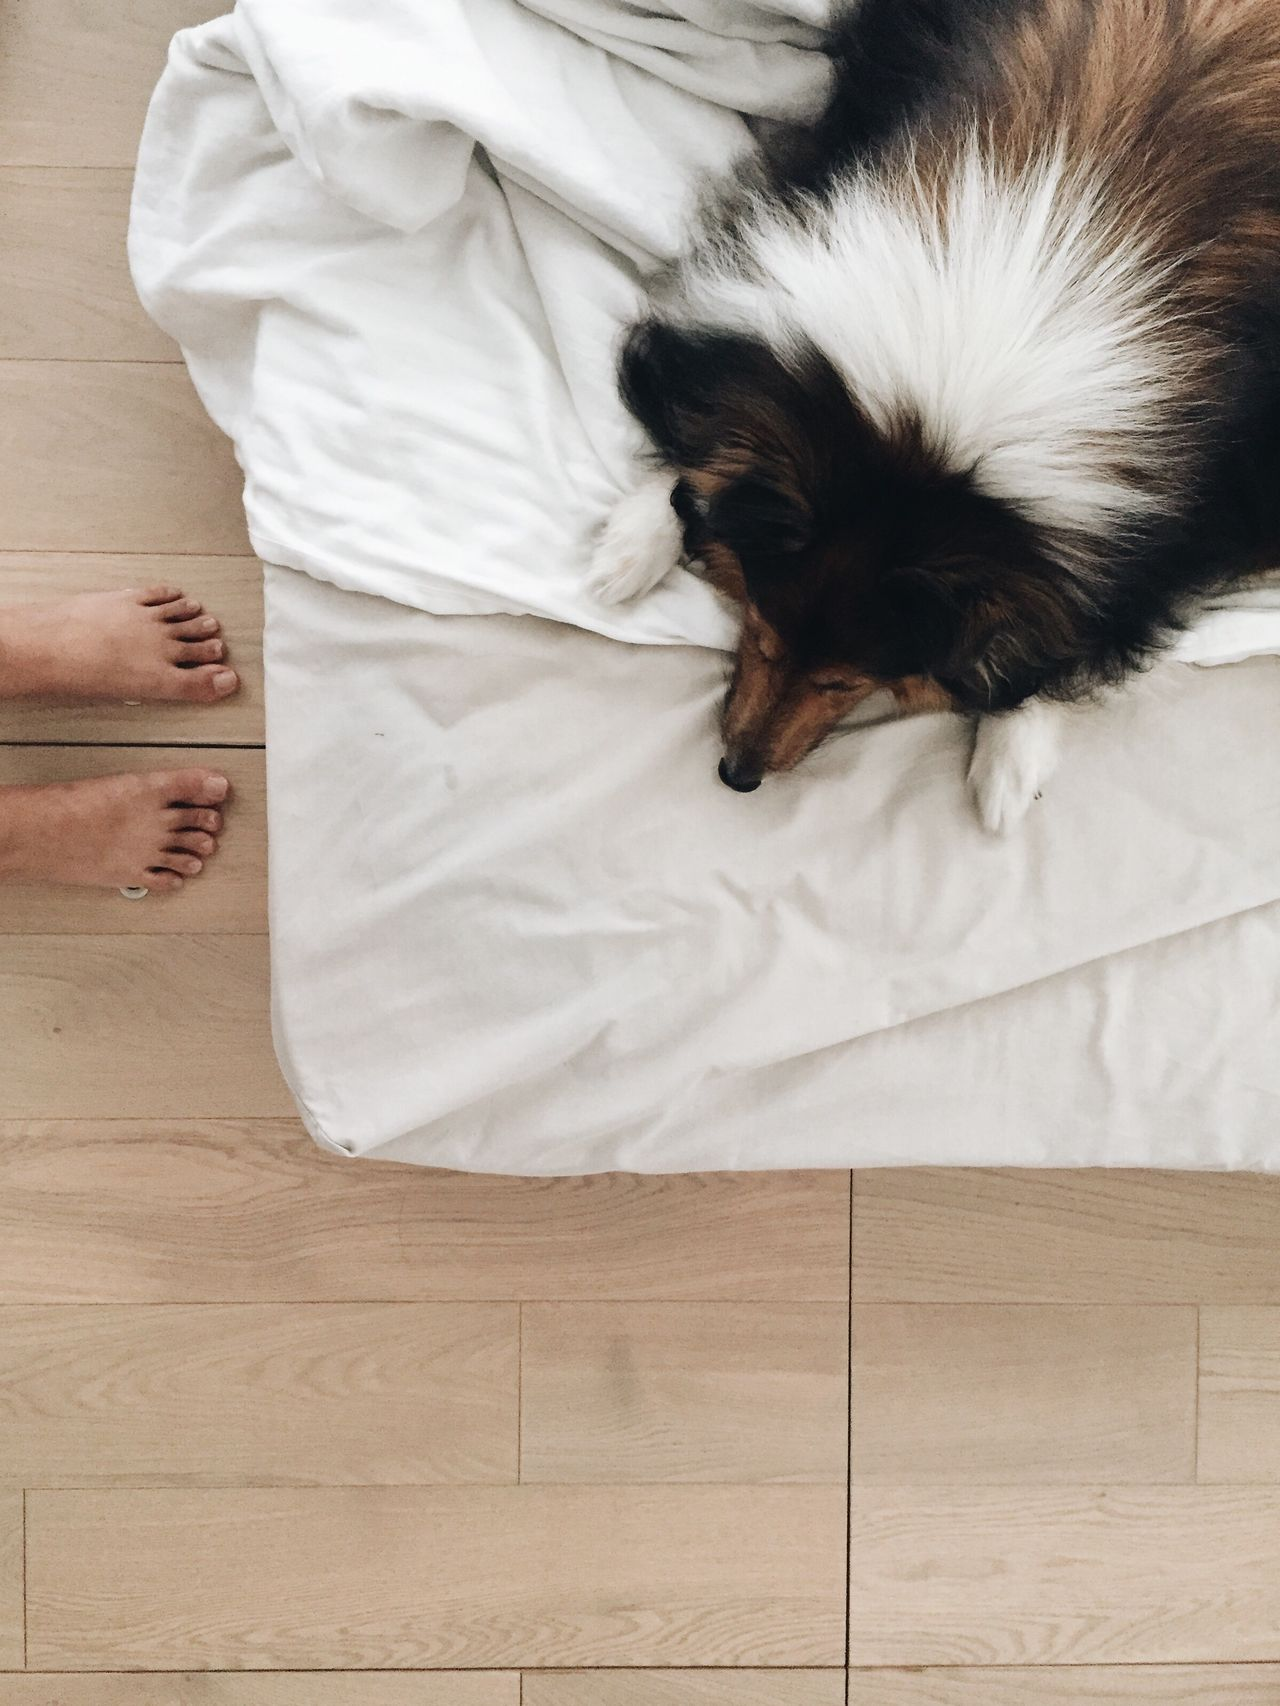 Pets Dog One Animal Domestic Animals Indoors  Mammal Real People Bed Animal Themes Sleeping Lying Down Sheepdog Sheltie One Person Puppy Lifestyles Relaxation Human Body Part Pillow Bedroom Human Hand